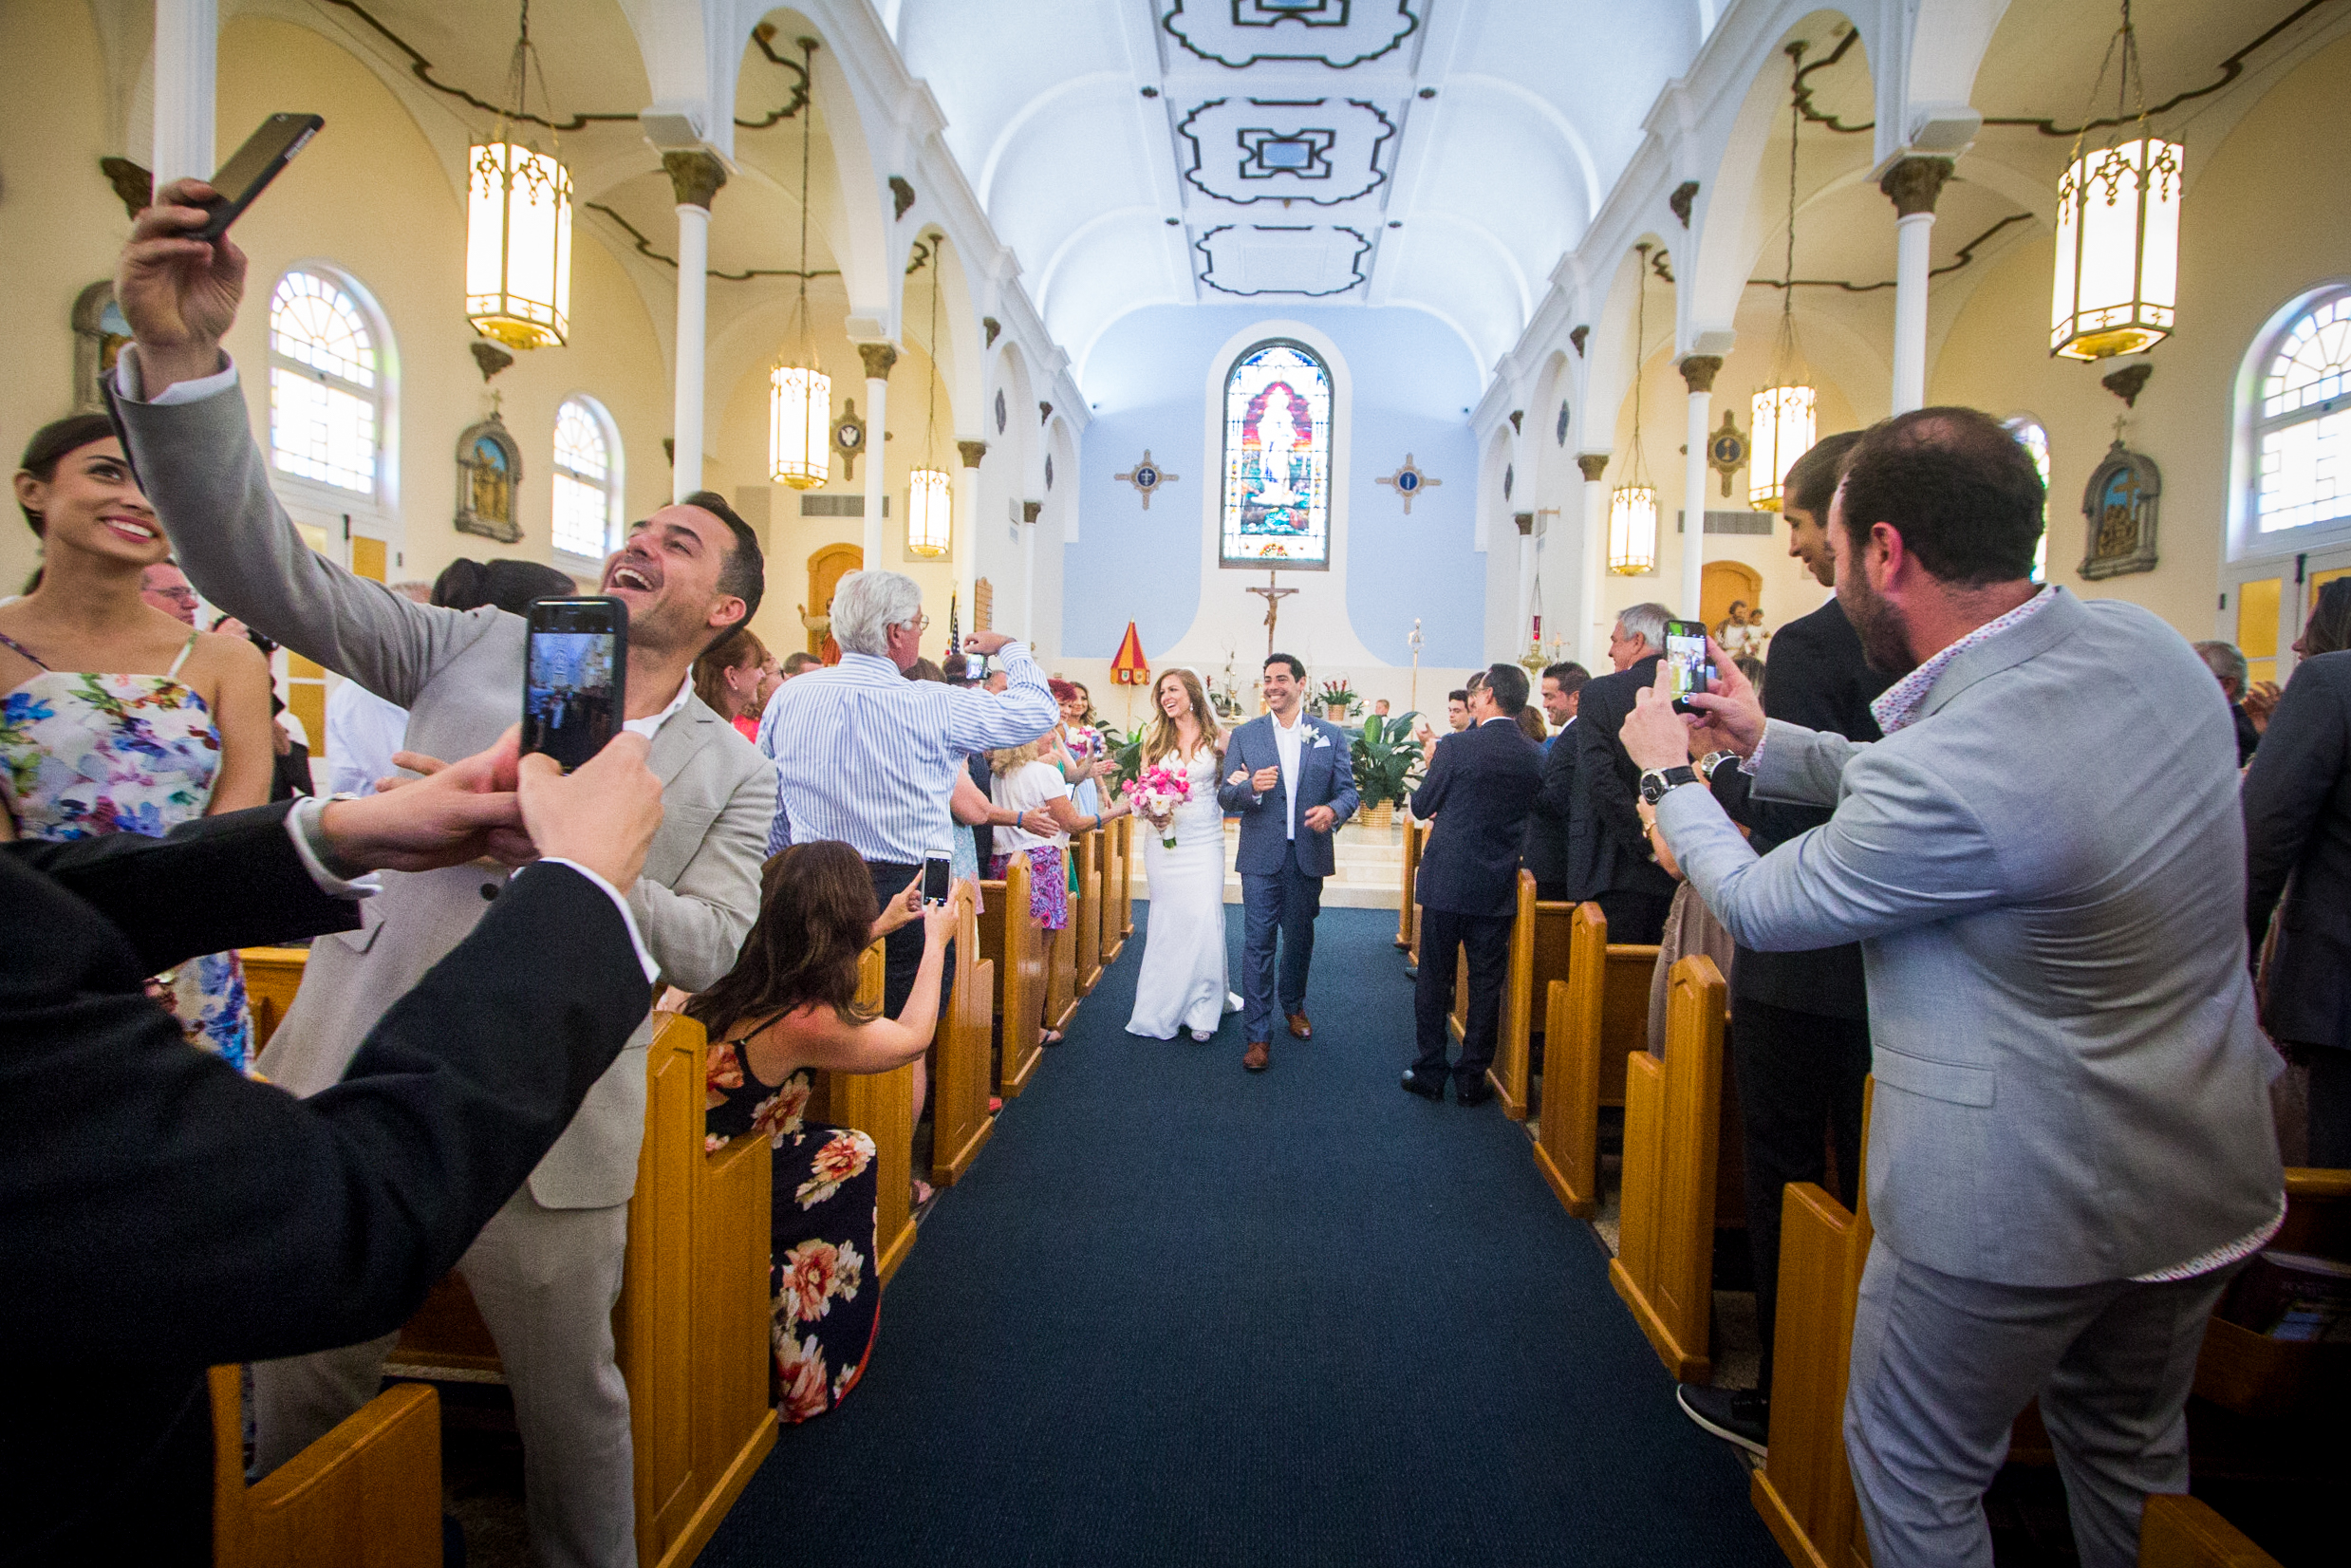 Married Couple Smiles for iPhone Pictures Walking Down Aisle at St Marys Basilica in Key West